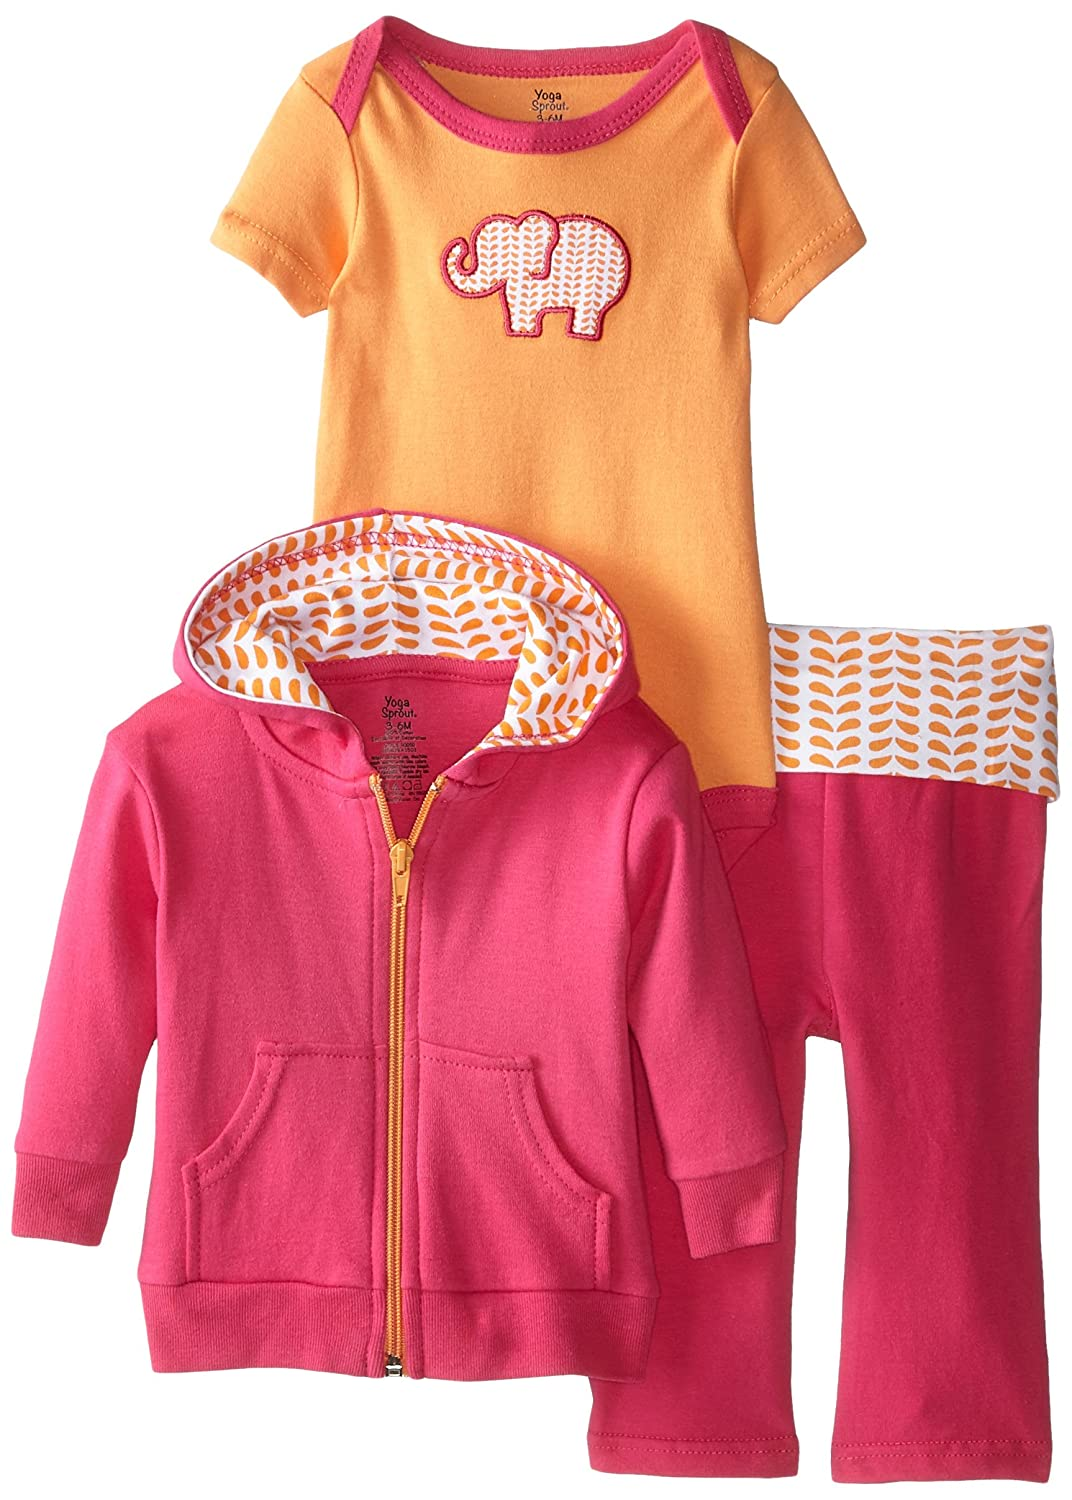 Yoga Sprout Baby Girls' 3 Piece Jacket, Bodysuit and Pant Set 90055